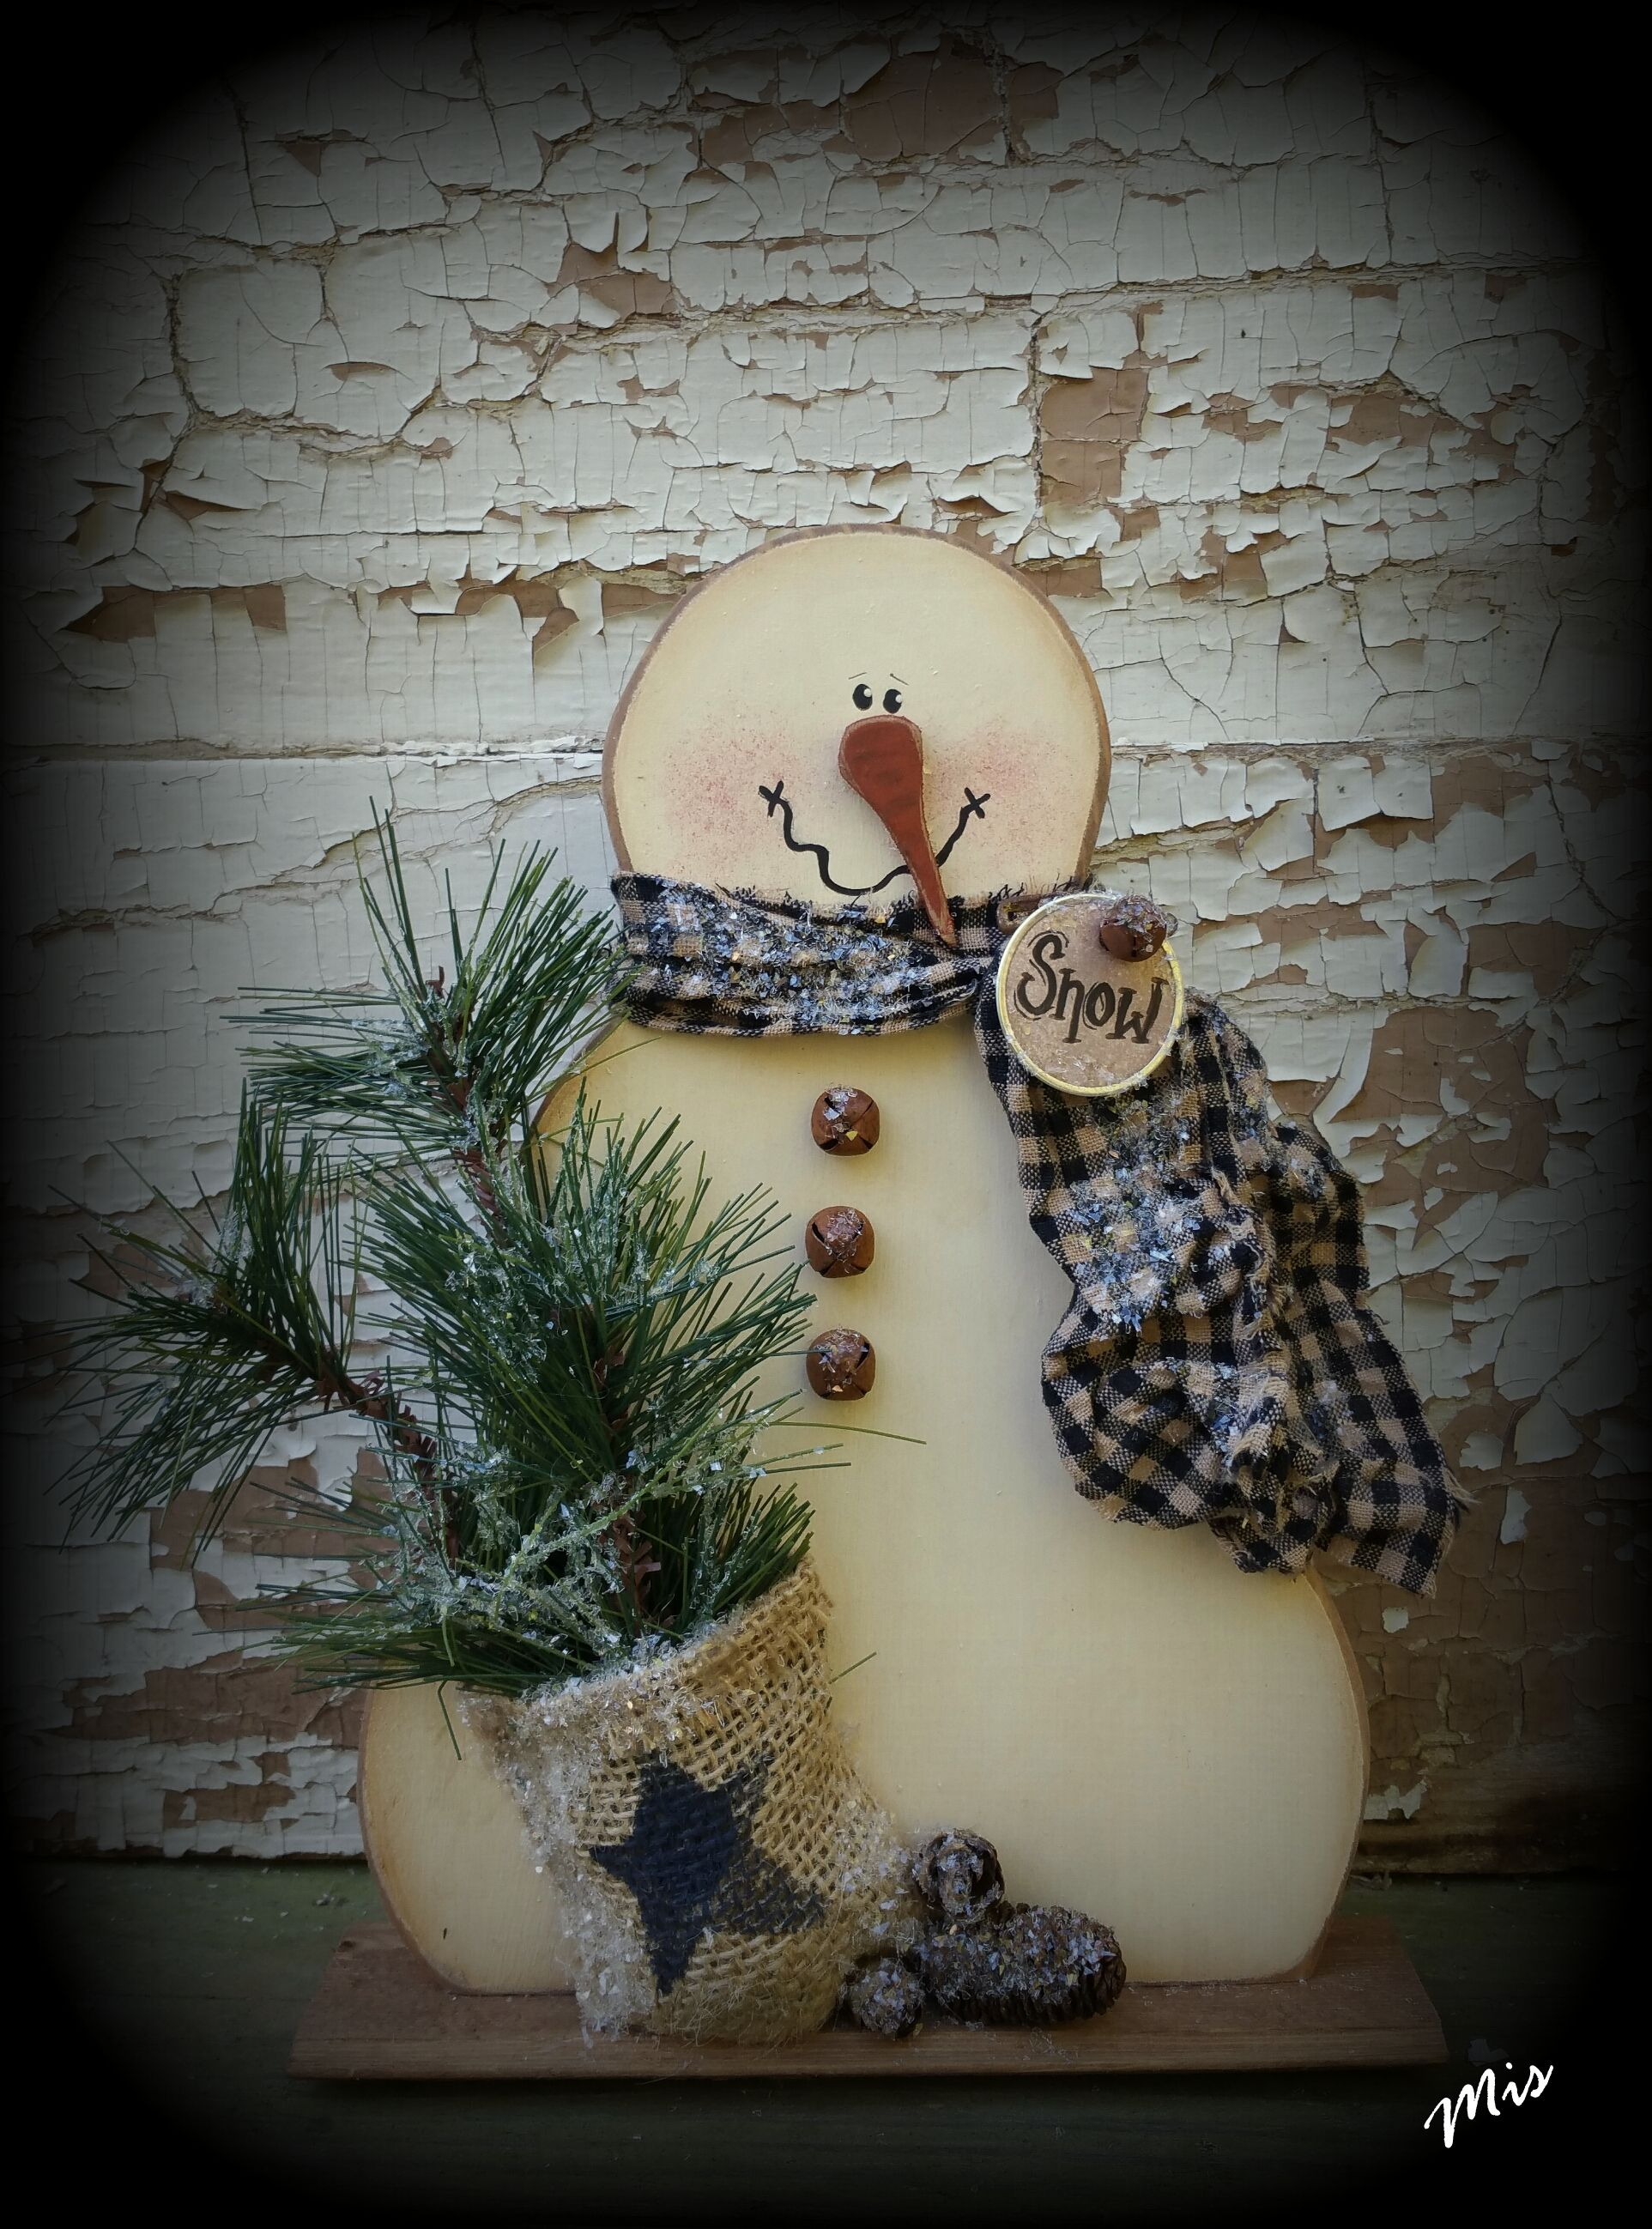 14+ Christmas wood crafts patterns ideas in 2021